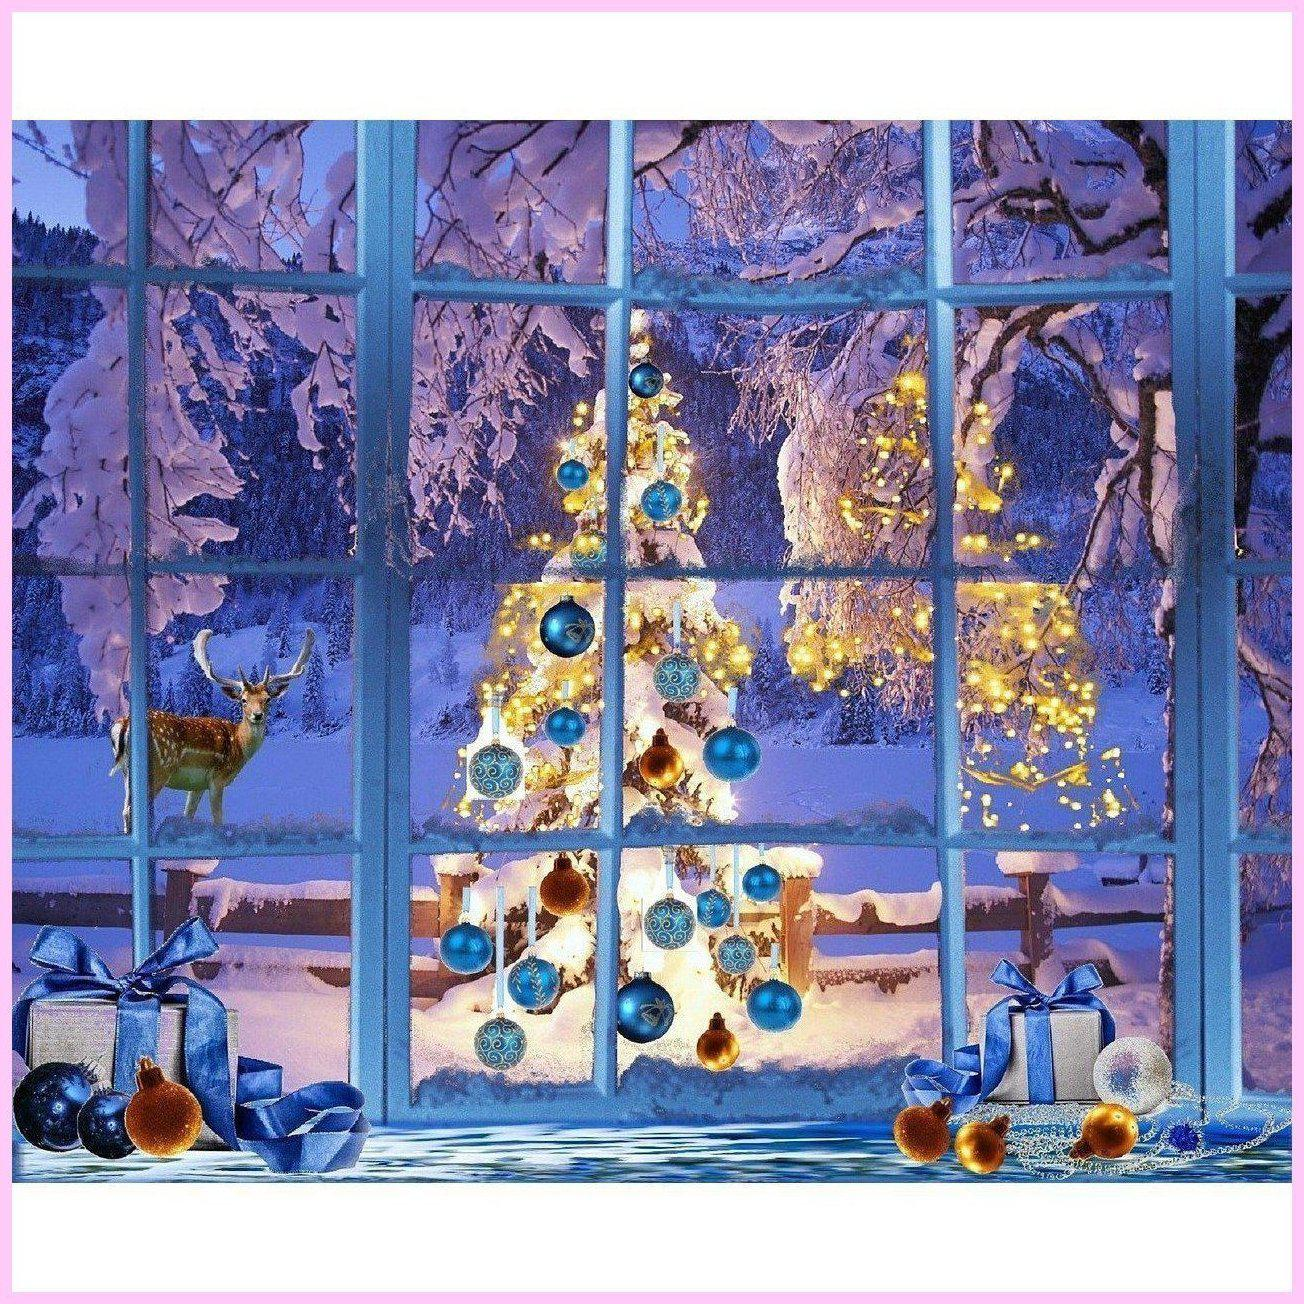 Christmas Through the Window-Diamond Painting Kit-35x40cm (14x16 in)-Square-Heartful Diamonds